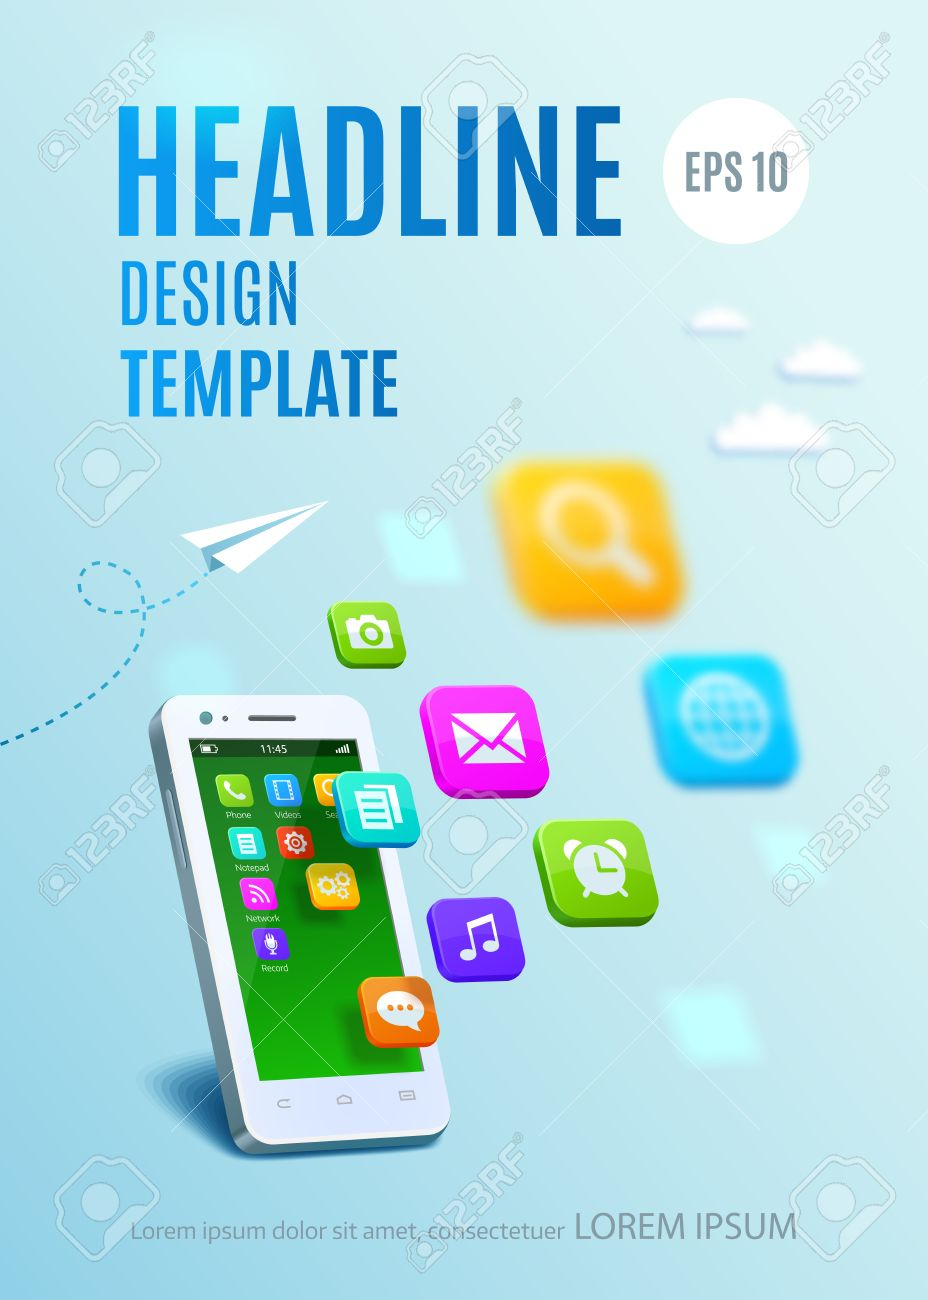 Poster design app - Download